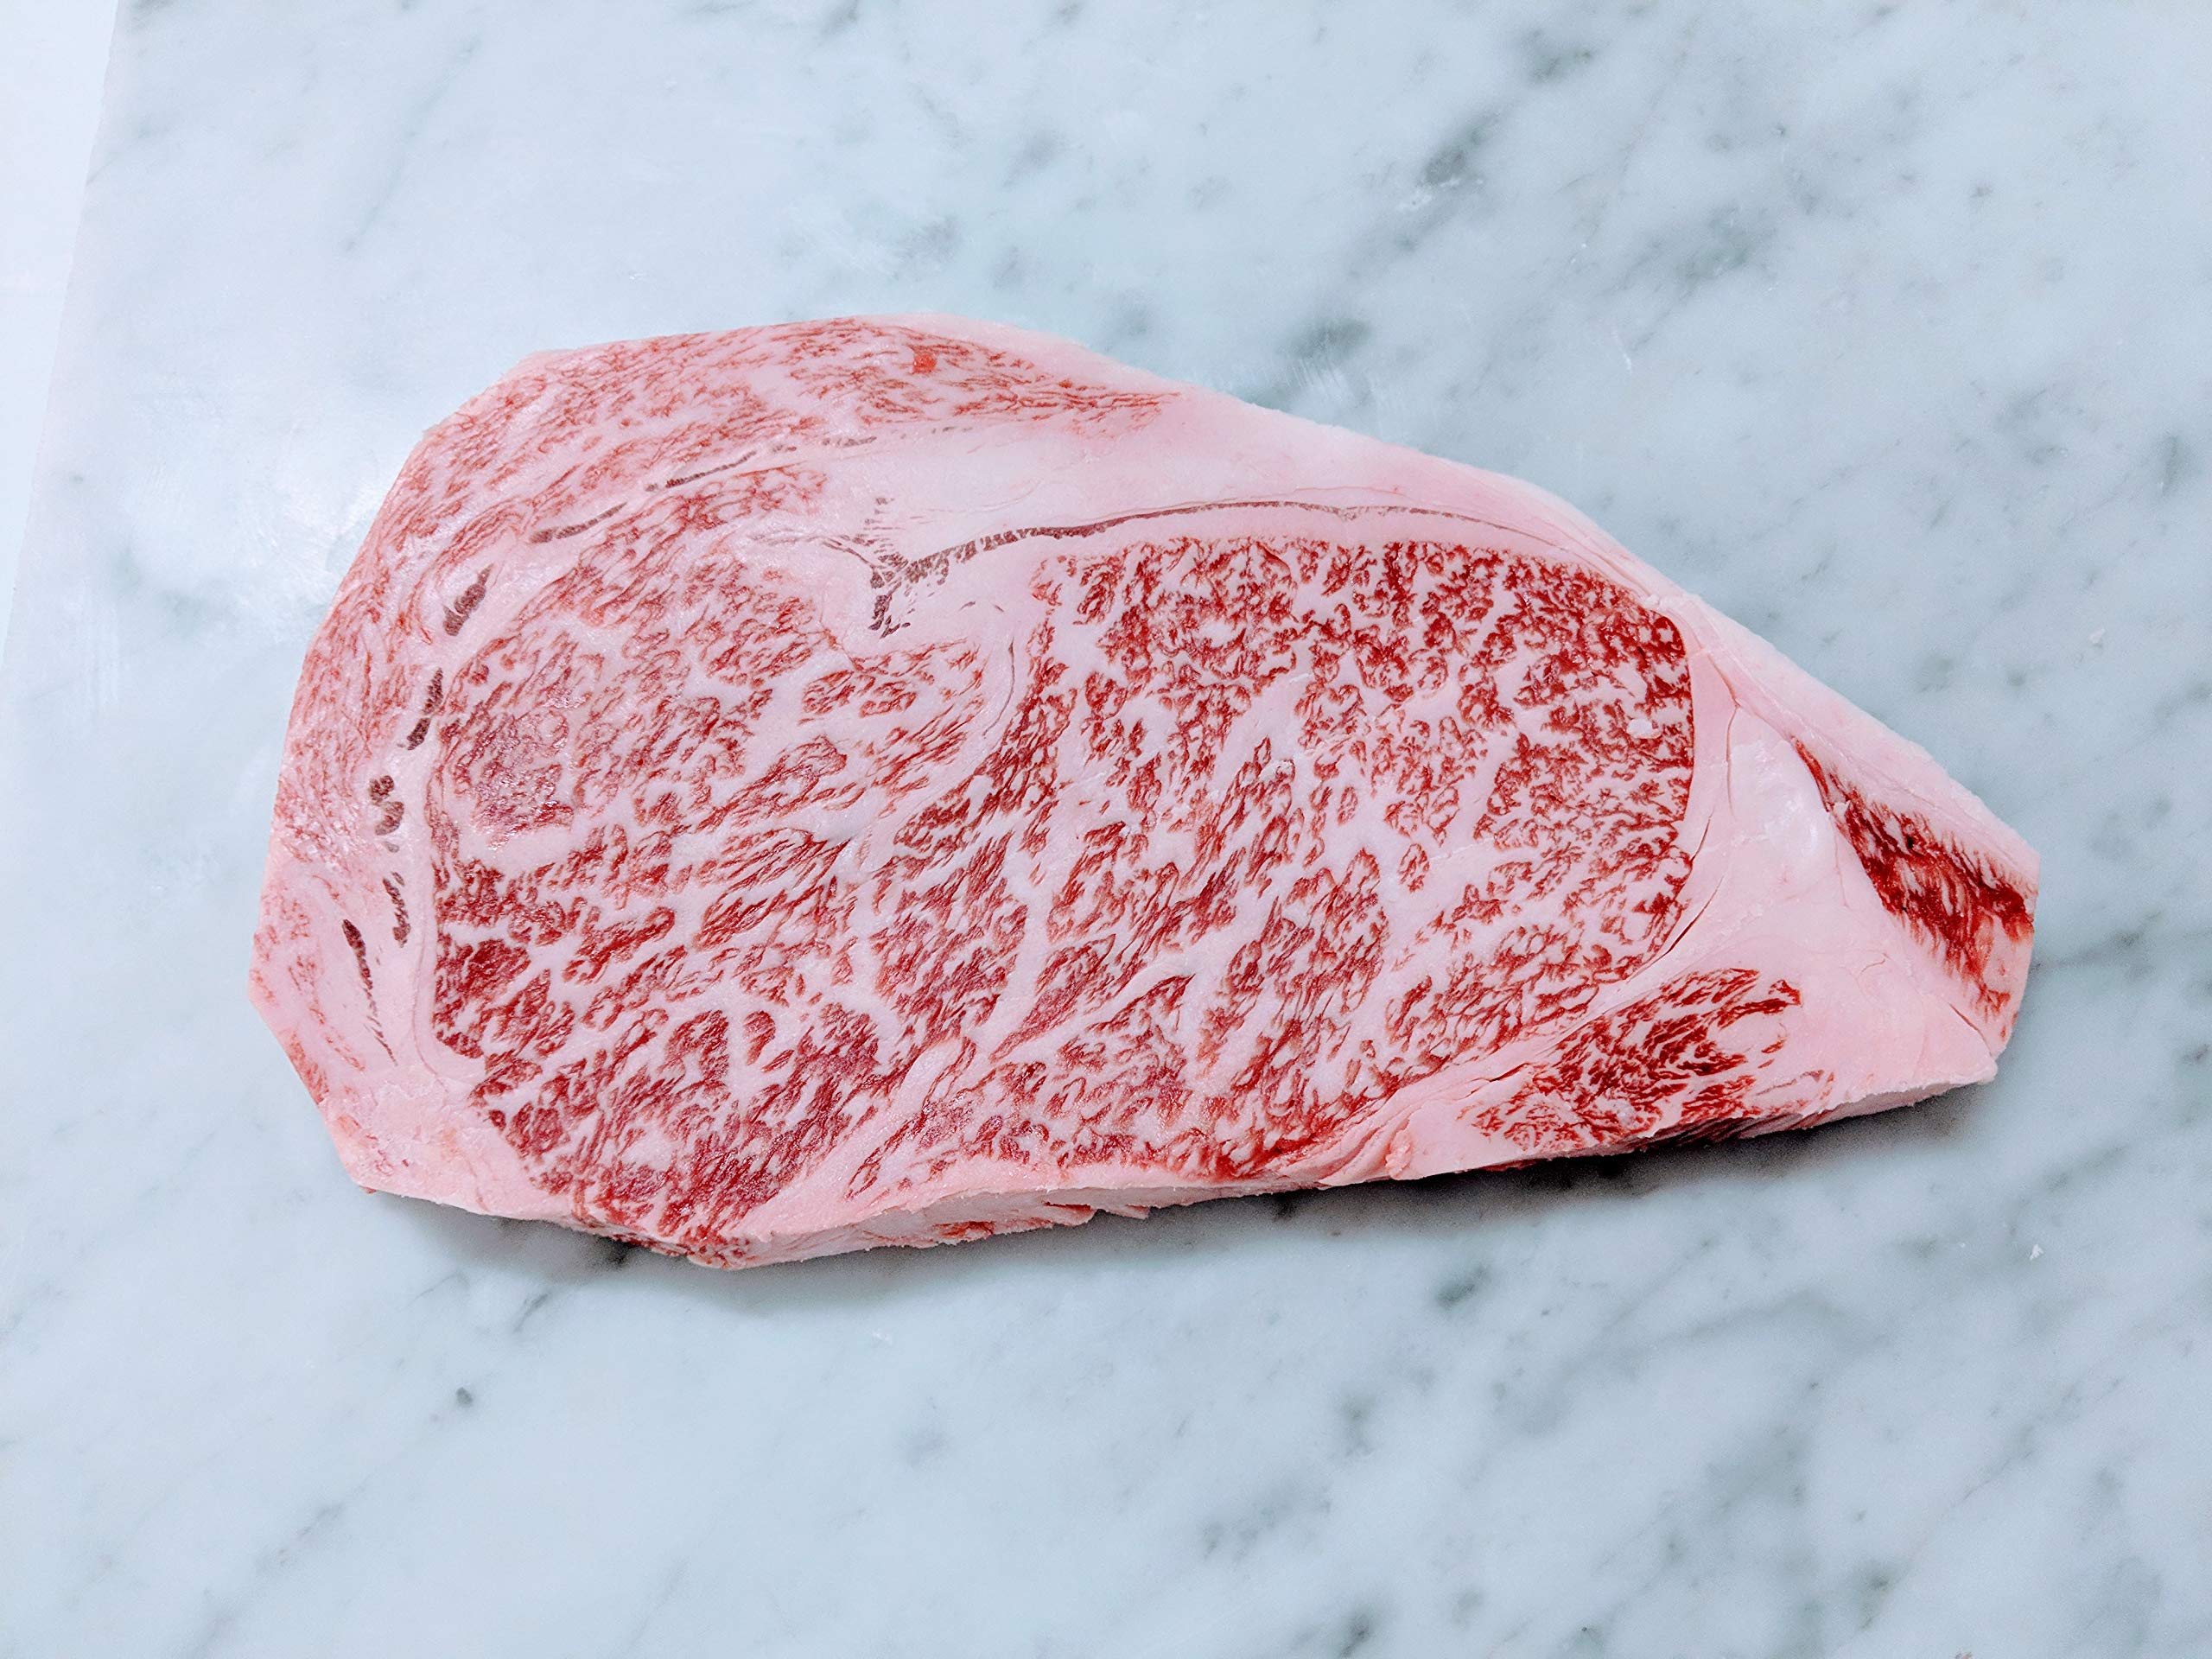 Holy Grail Steak Company, A5 Grade, Genuine Kobe Ribeye, Japanese Wagyu Beef (13-15 oz.) by Holy Grail Steak Company (Image #2)